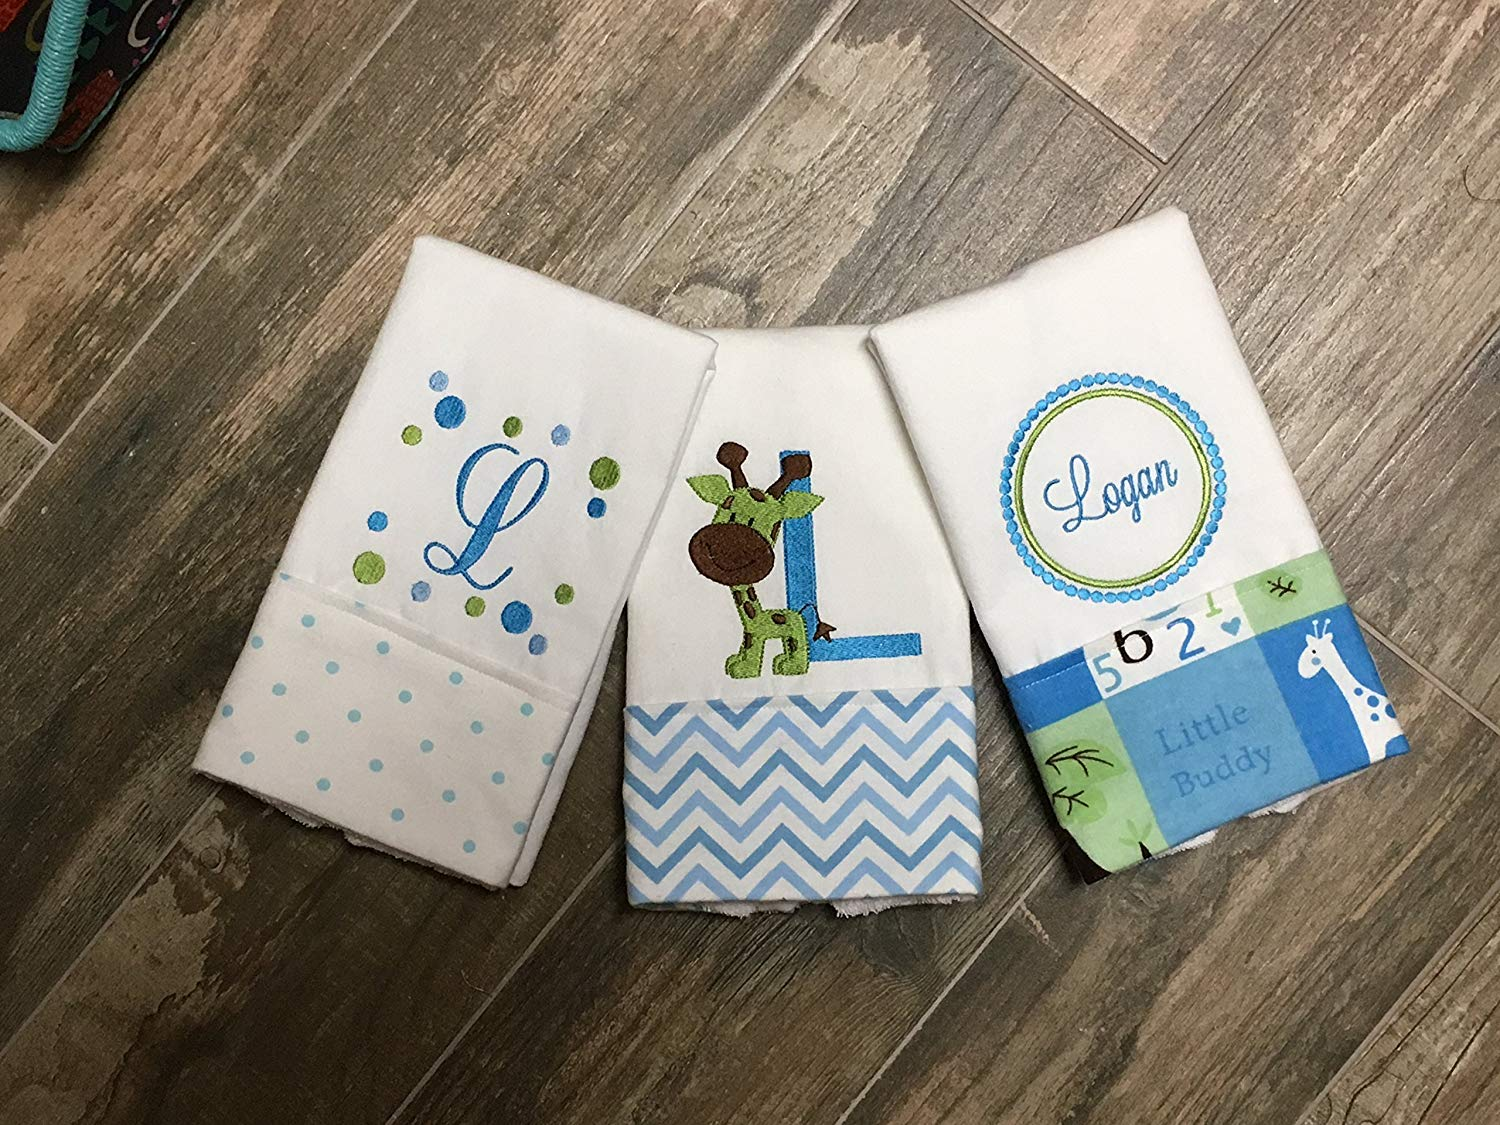 1ae1e8d40 Get Quotations · 3 Giraffe Personalized Embroidered Burp Cloths, Baby  Shower Gift, 3 Blue Burp Cloths,